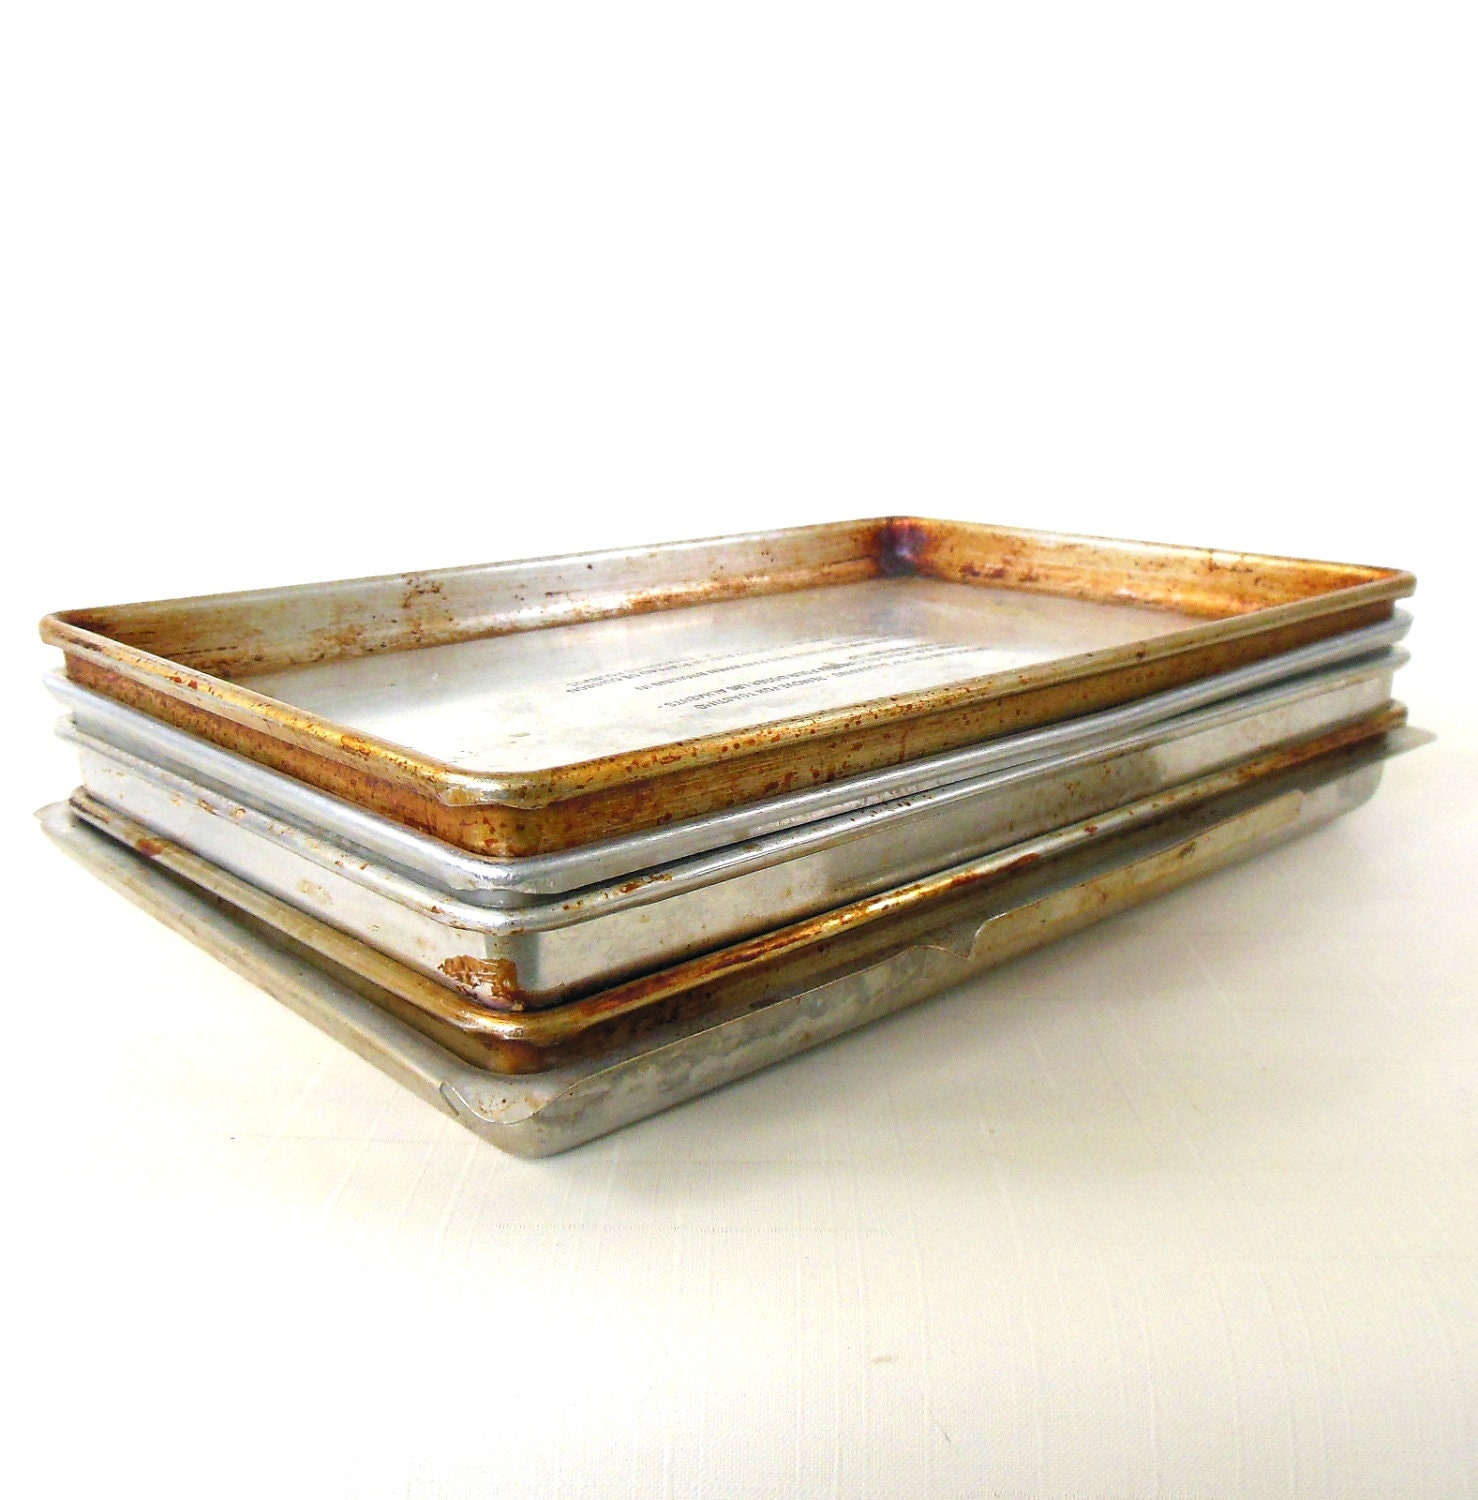 Toaster Oven Baking Sheet Pans by LaurasLastDitch on Etsy